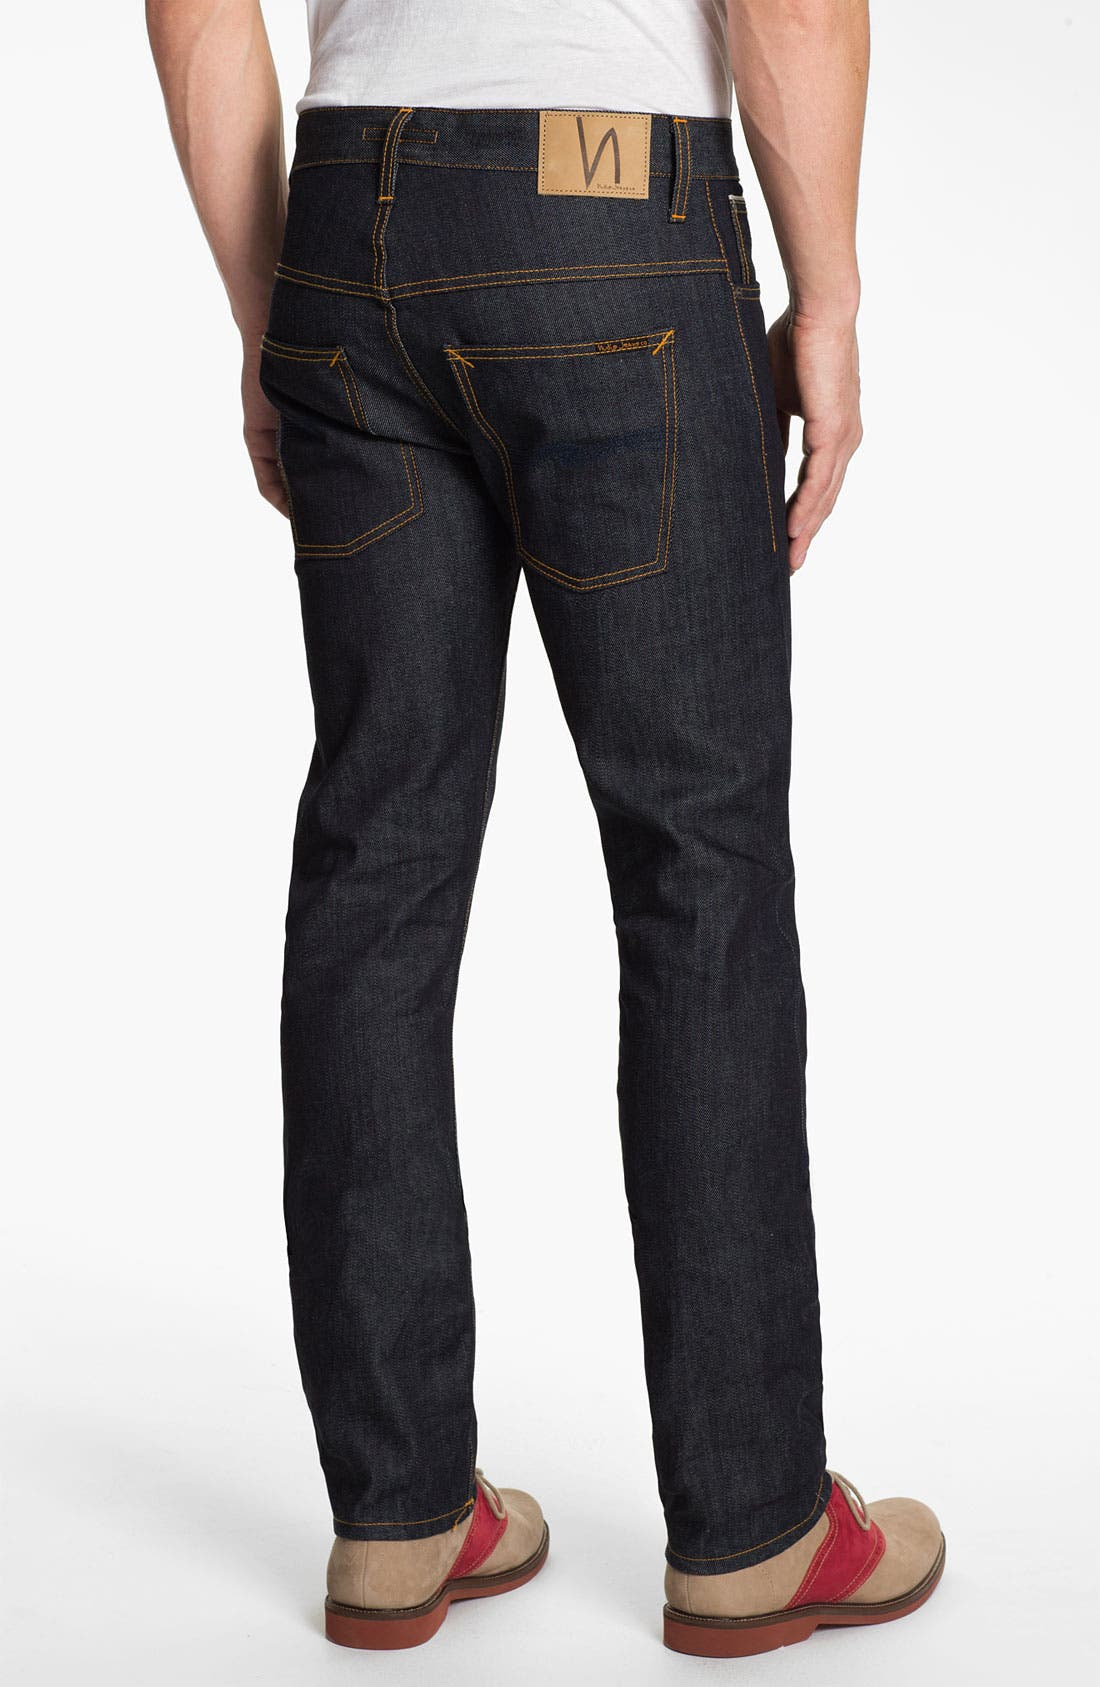 Alternate Image 1 Selected - Nudie 'Thin Finn' Slim Skinny Leg Jeans (Organic Dry Heavy Selvedge)